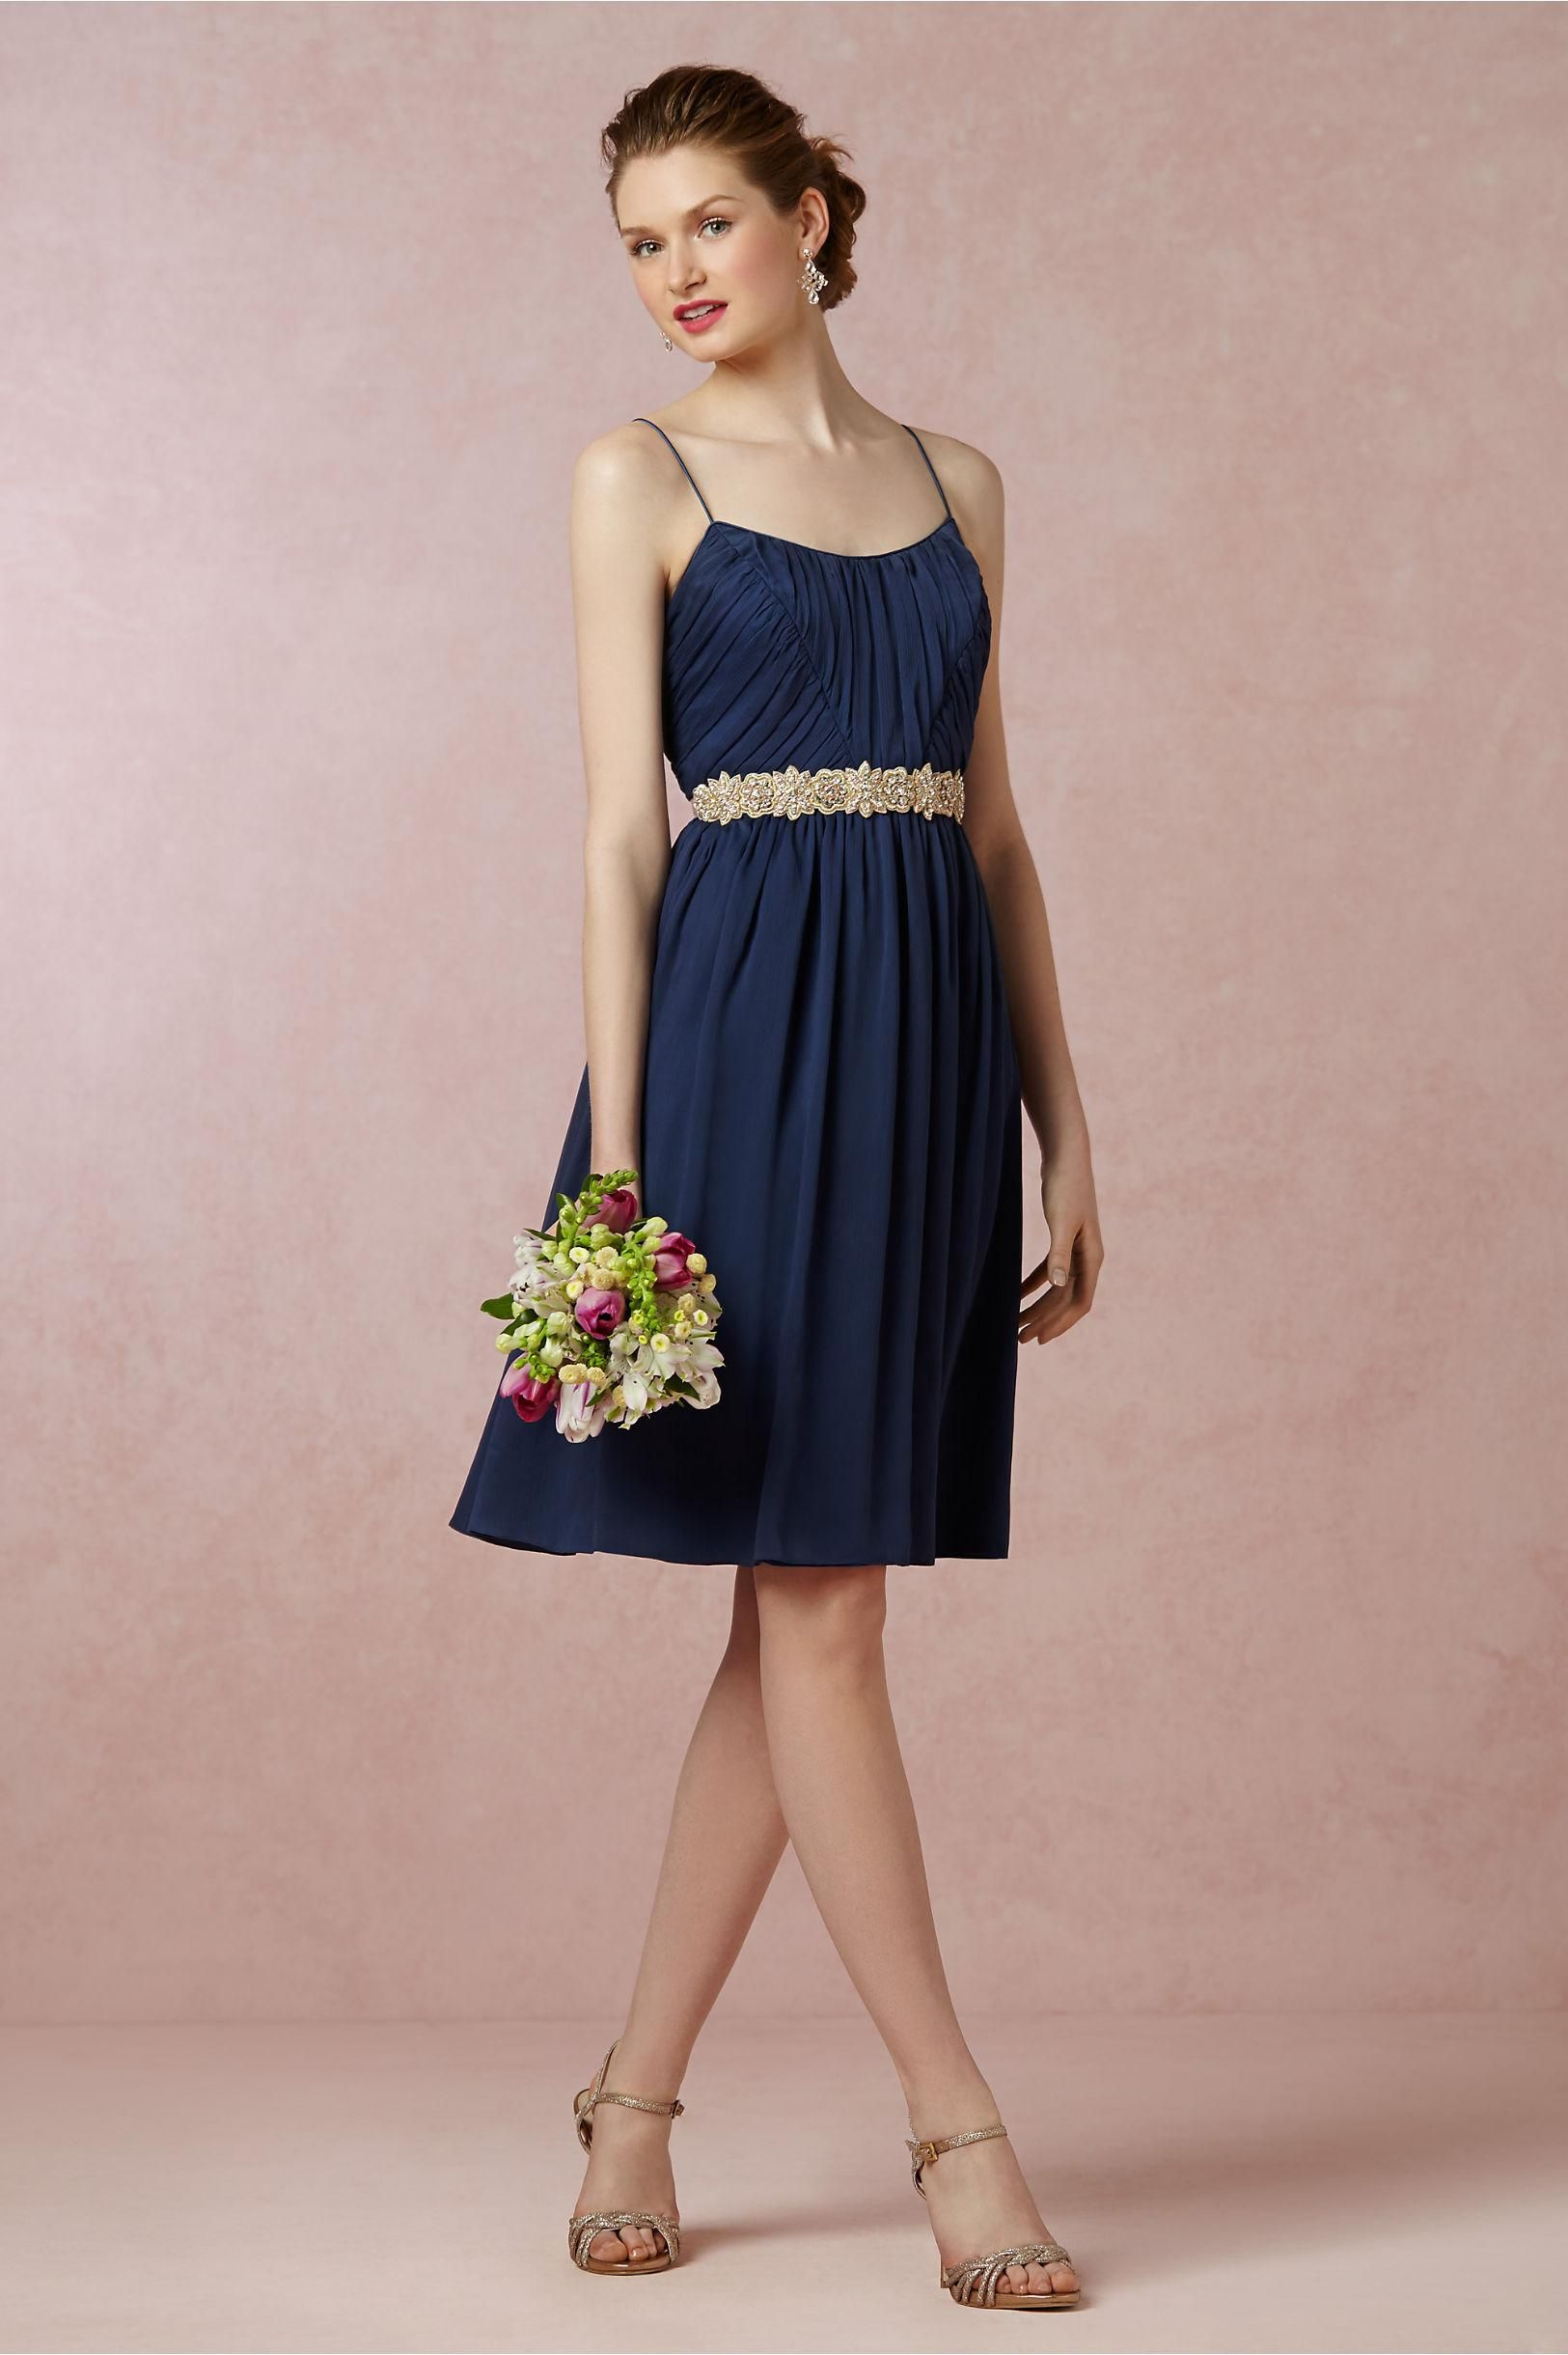 Giselle Bridesmaids Dress in Navy from BHLDN | For our peps ...